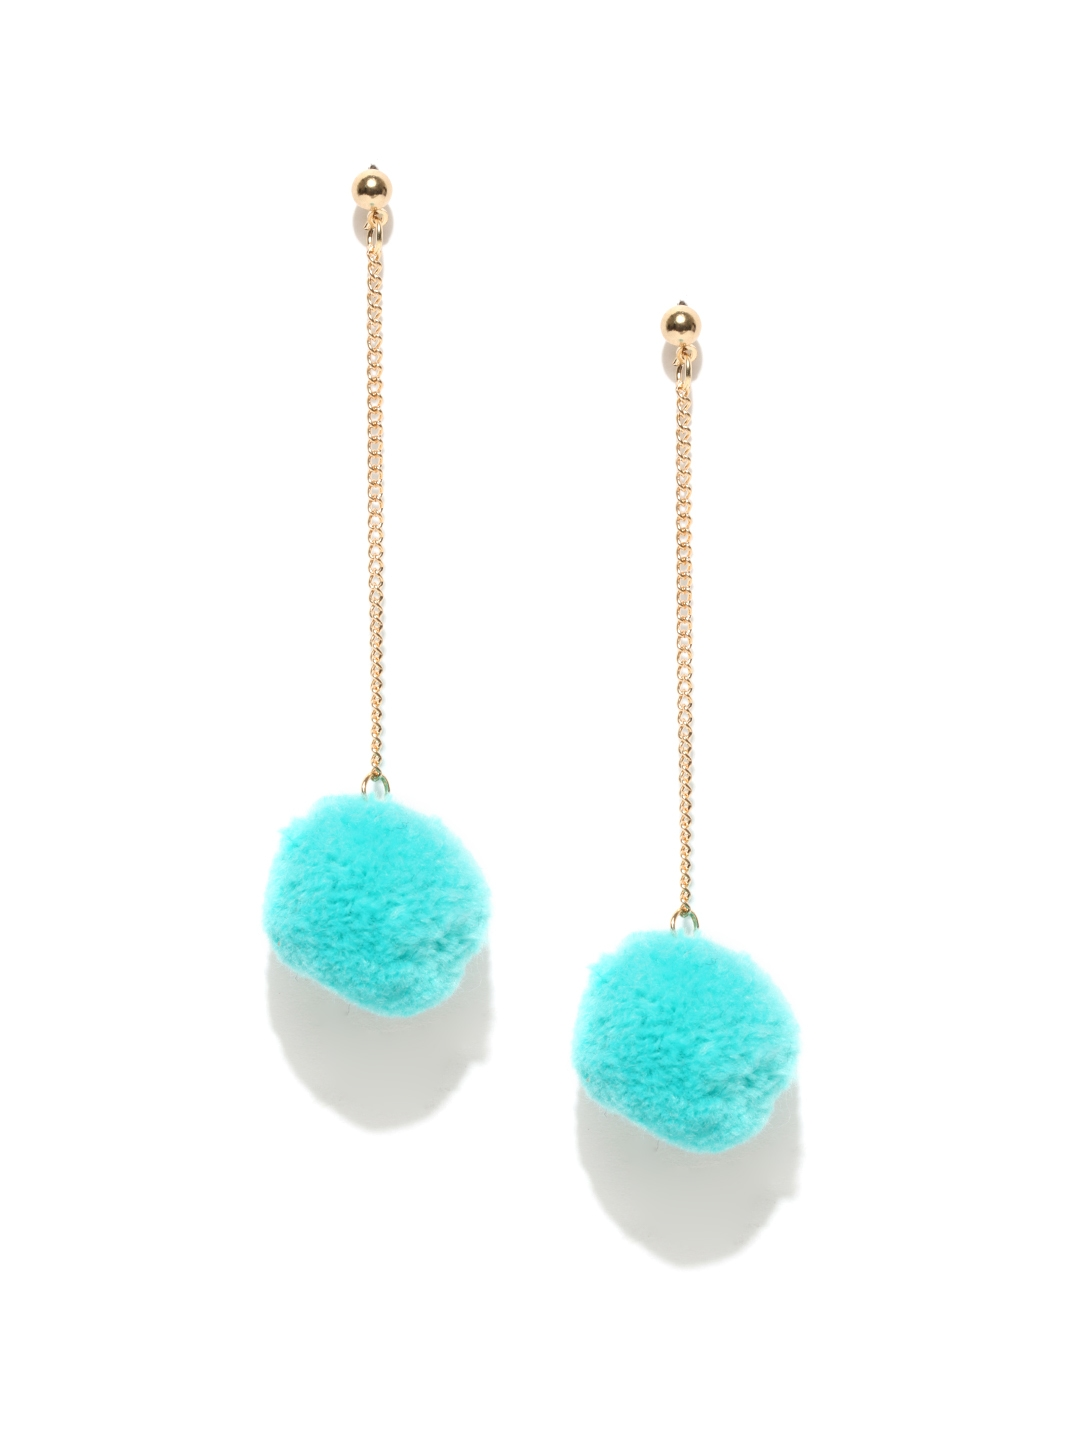 a458a6aafb34 Buy OOMPH Turquoise Blue Classic Pom Pom Earrings - Earrings for ...